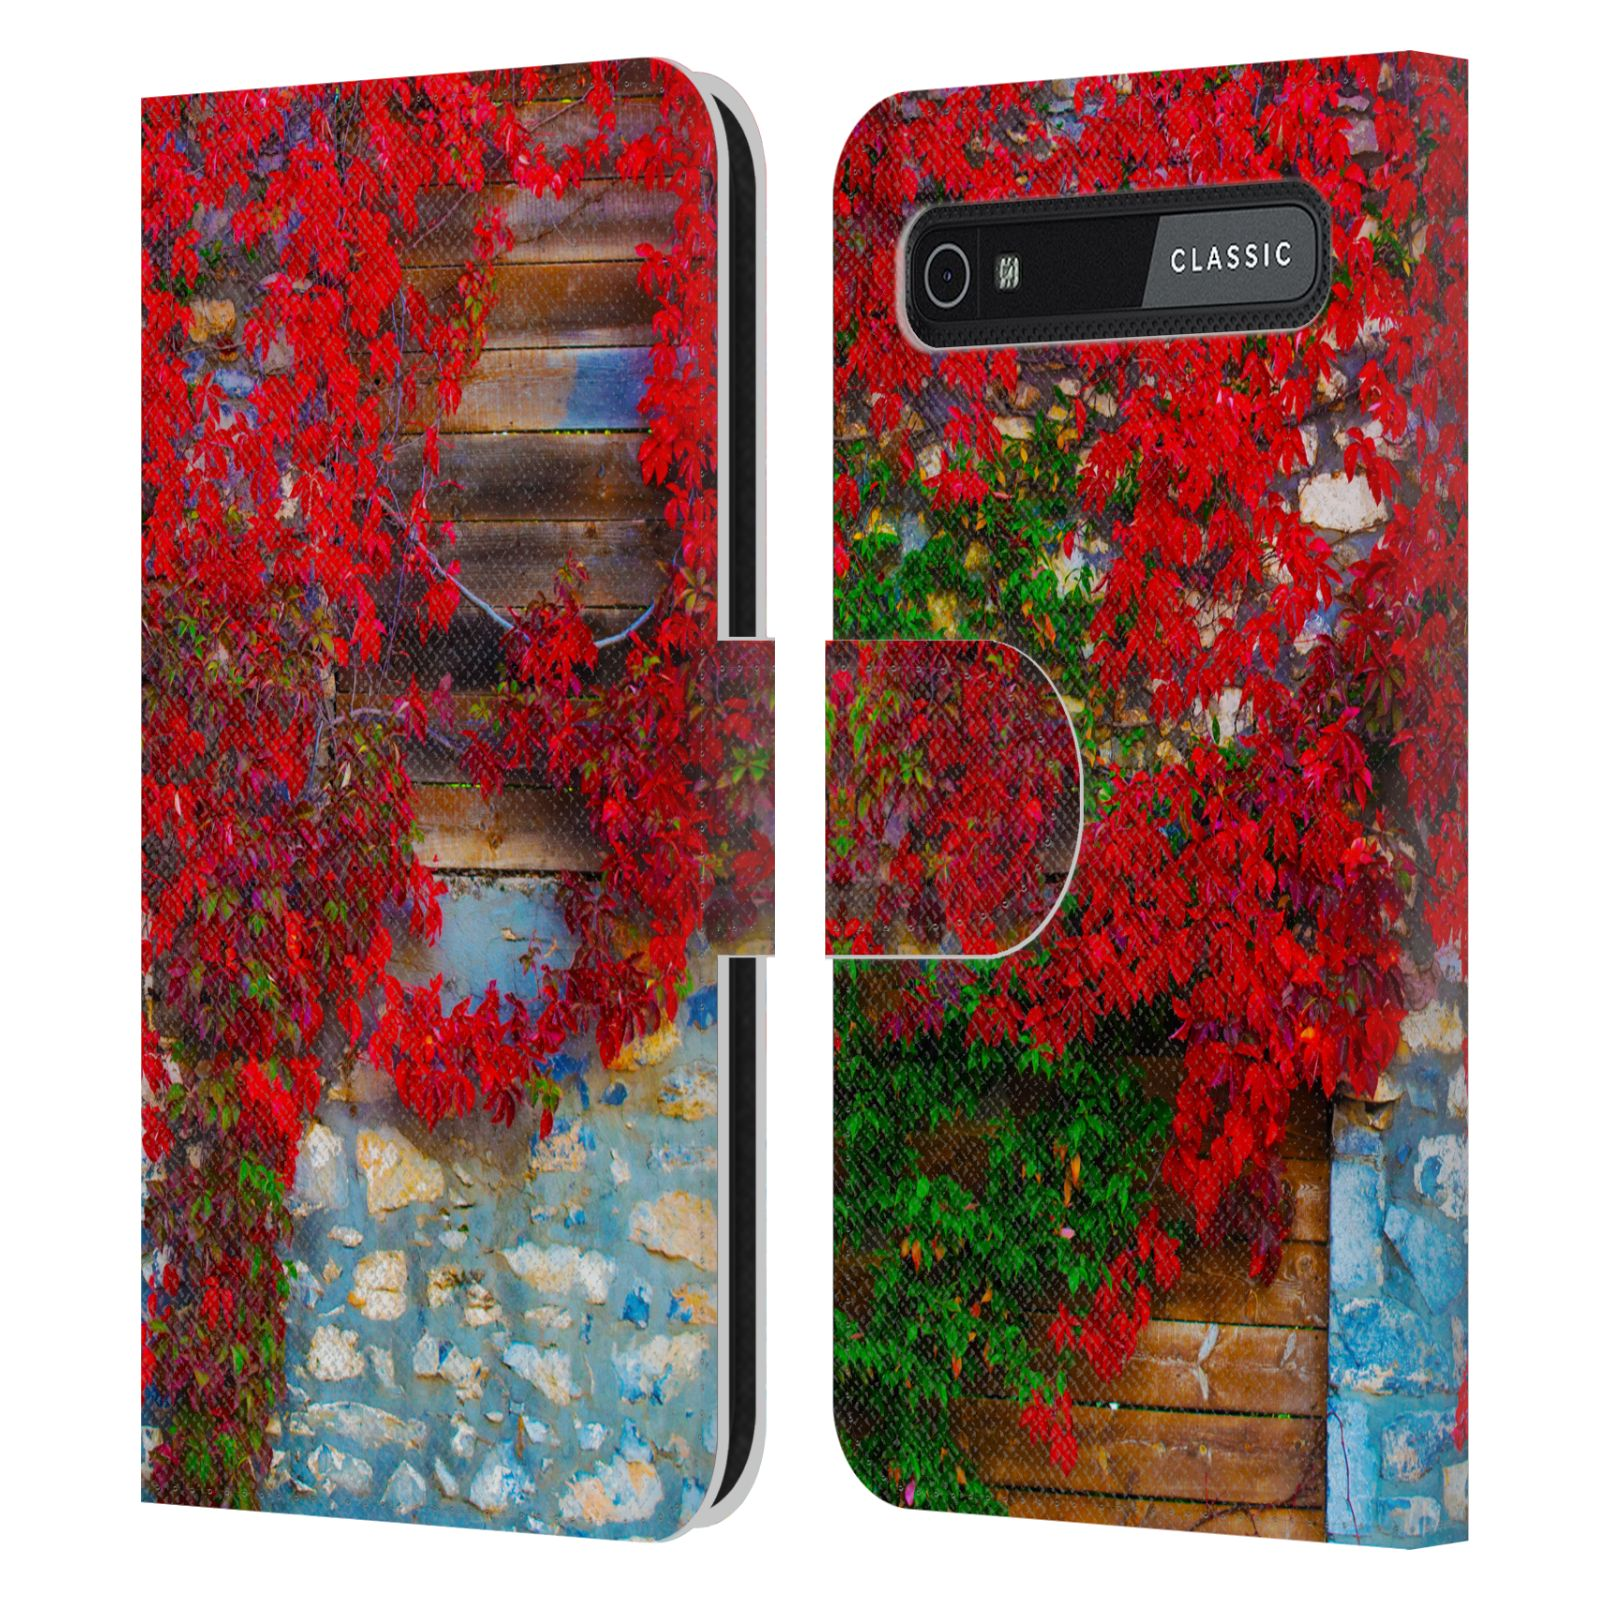 Book Cover Black Berry : Haroulita fantasy leather book wallet case for